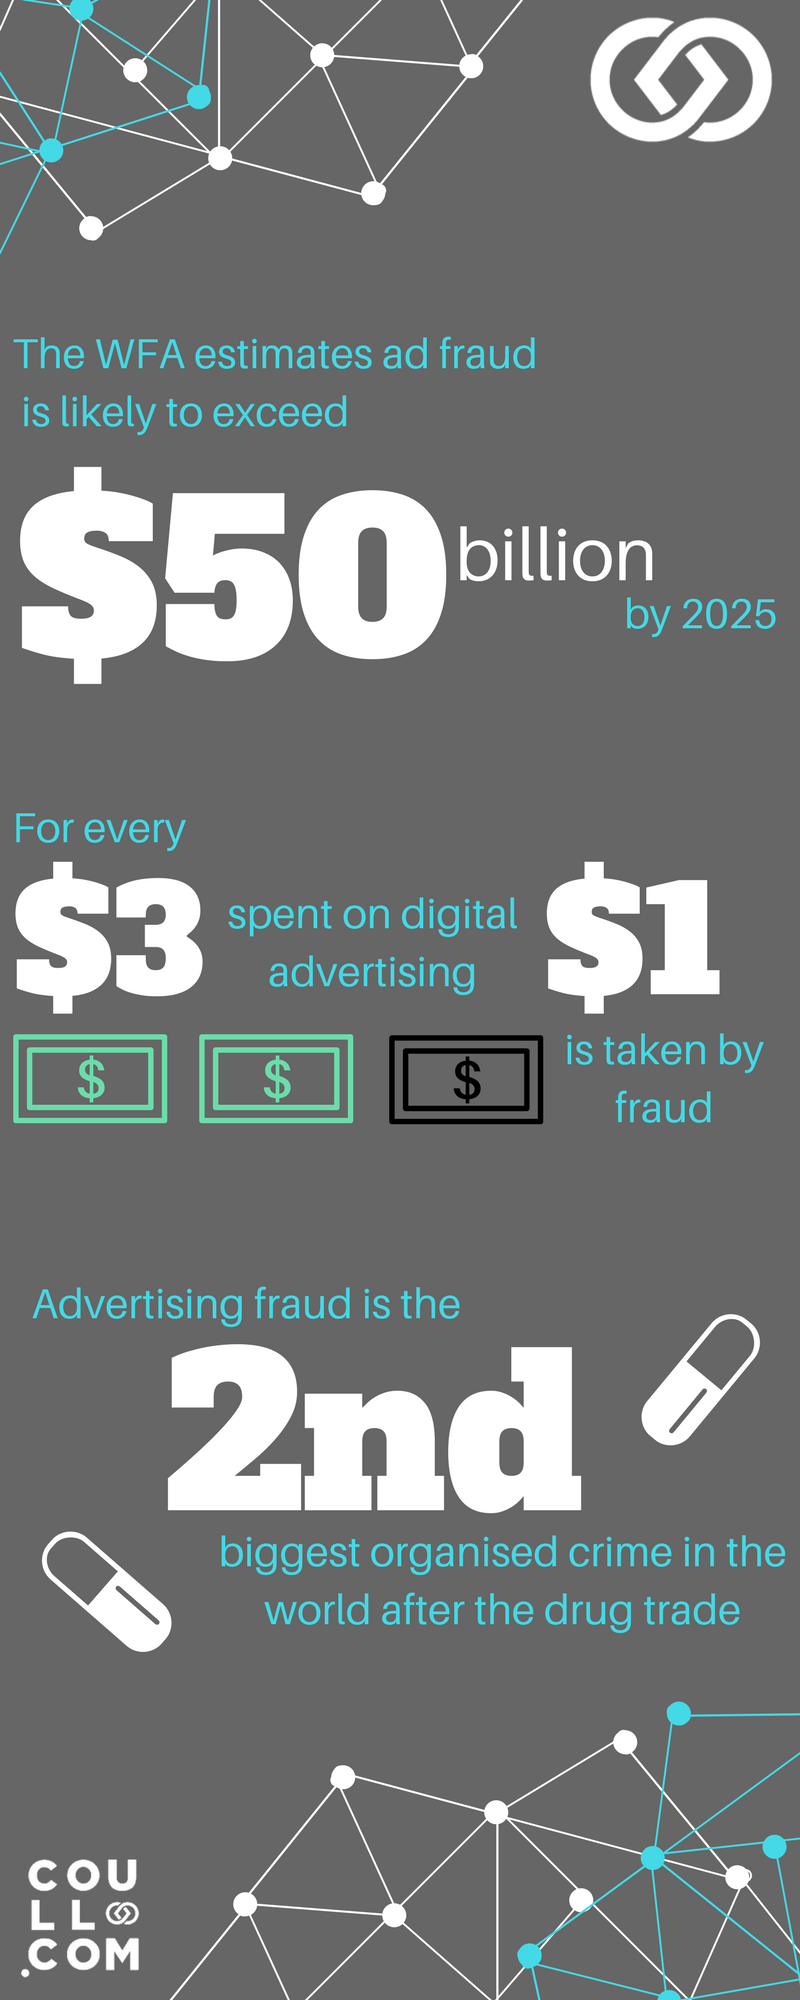 ad fraud infographic